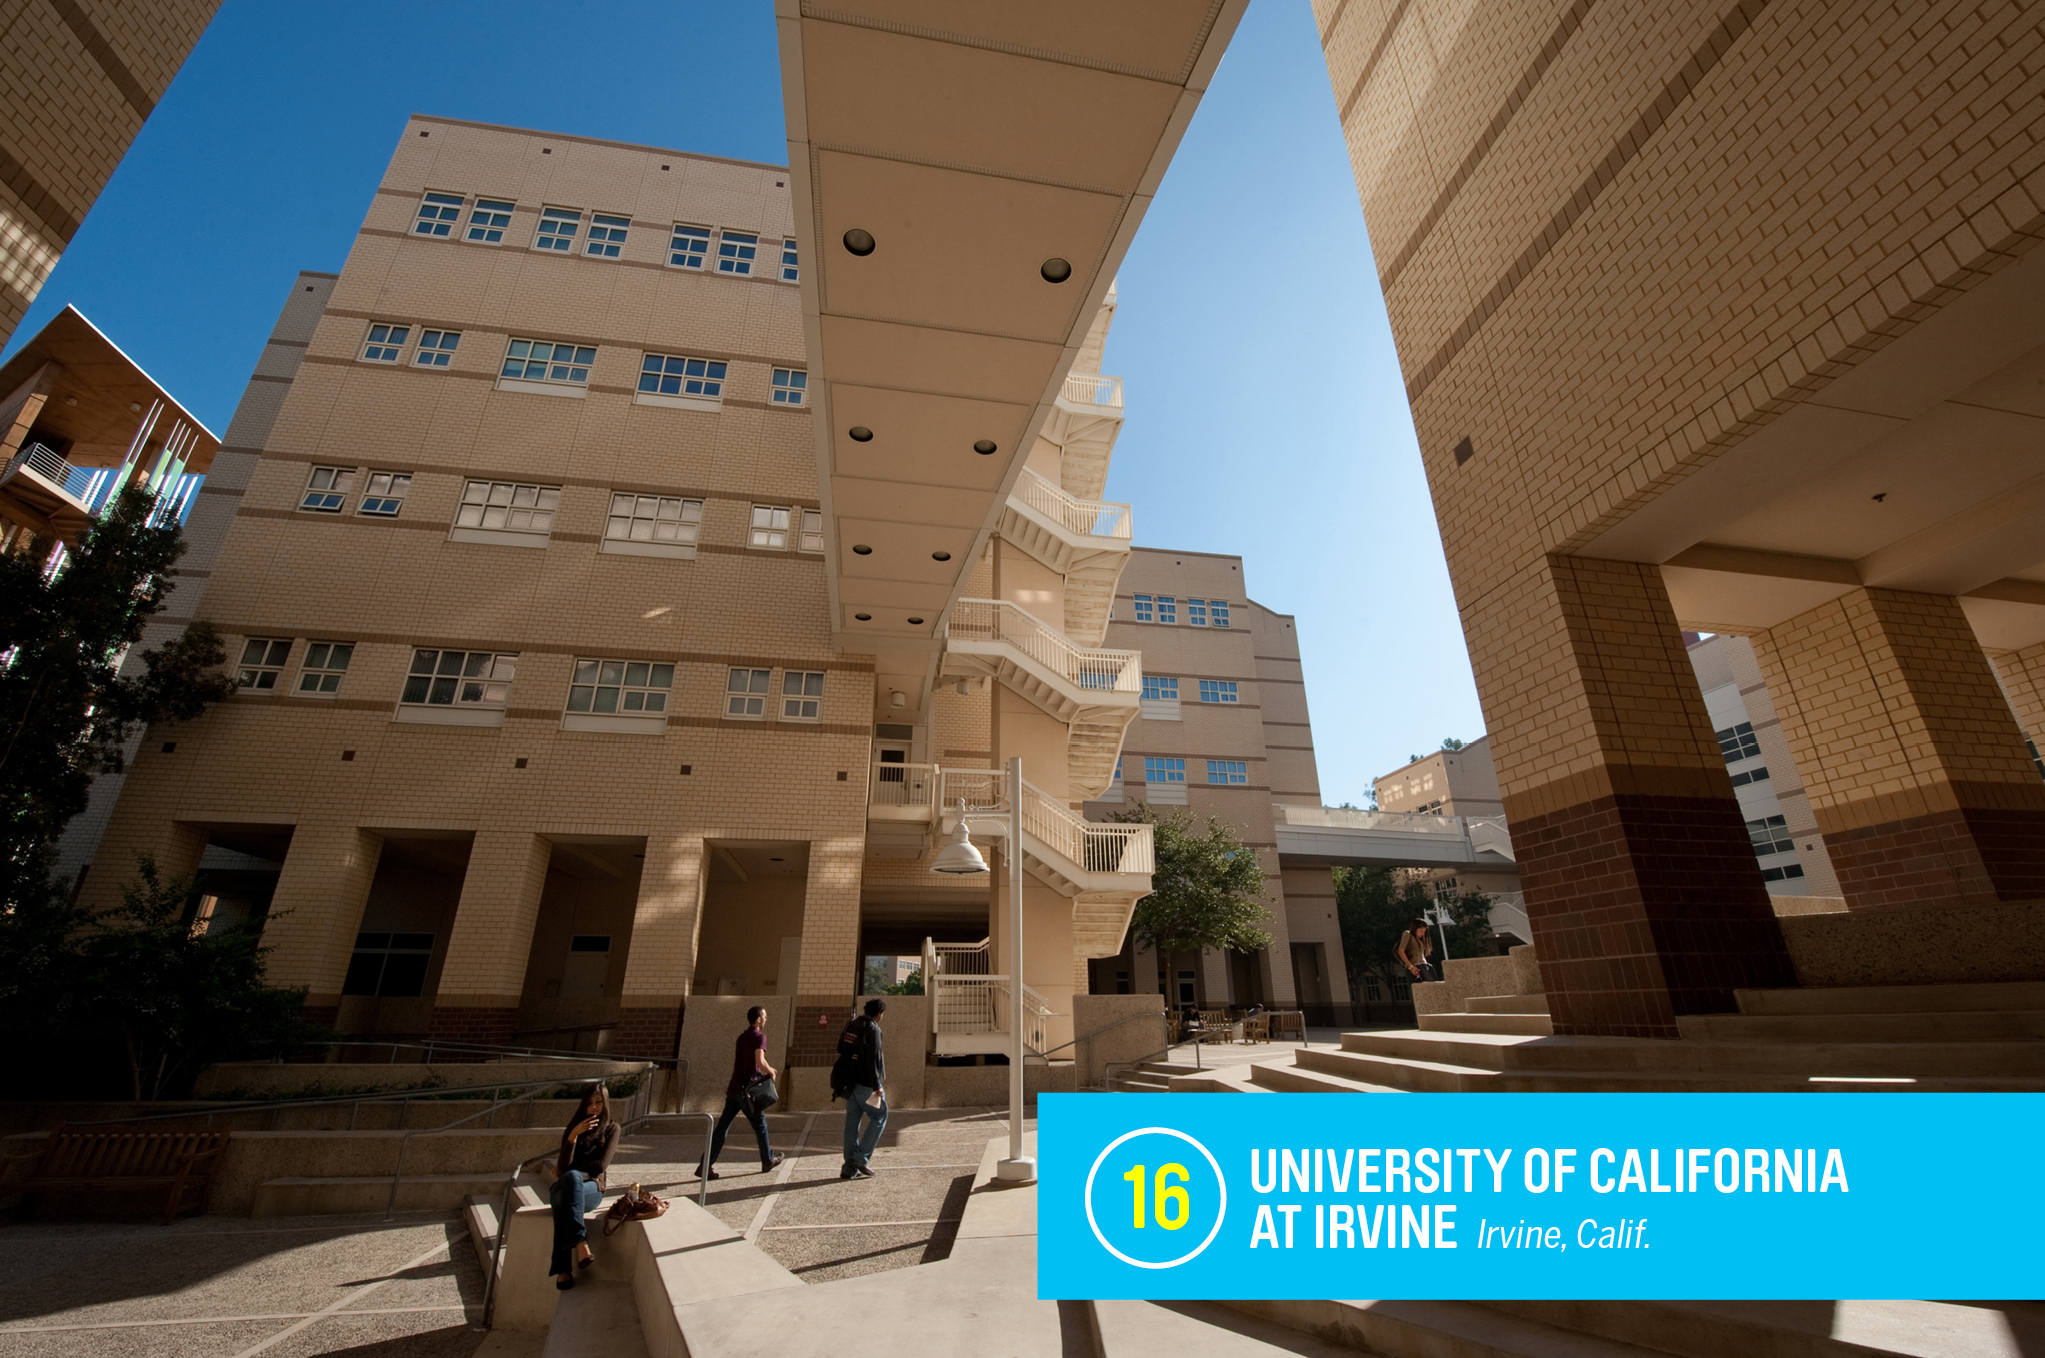 "<a href=""https://money.com/best-colleges/profile/university-of-california-irvine/"" target=""_blank"">UC-Irvine</a> shines in serving one of the most diverse student bodies in the country: More than 40% of students come from low-income families. Yet the school still boasts an 86% graduation rate—an impressive 41% higher than similar colleges. <a href=""https://money.com/best-colleges/profile/university-of-california-irvine/"" target=""_blank"">FULL PROFILE</a>"